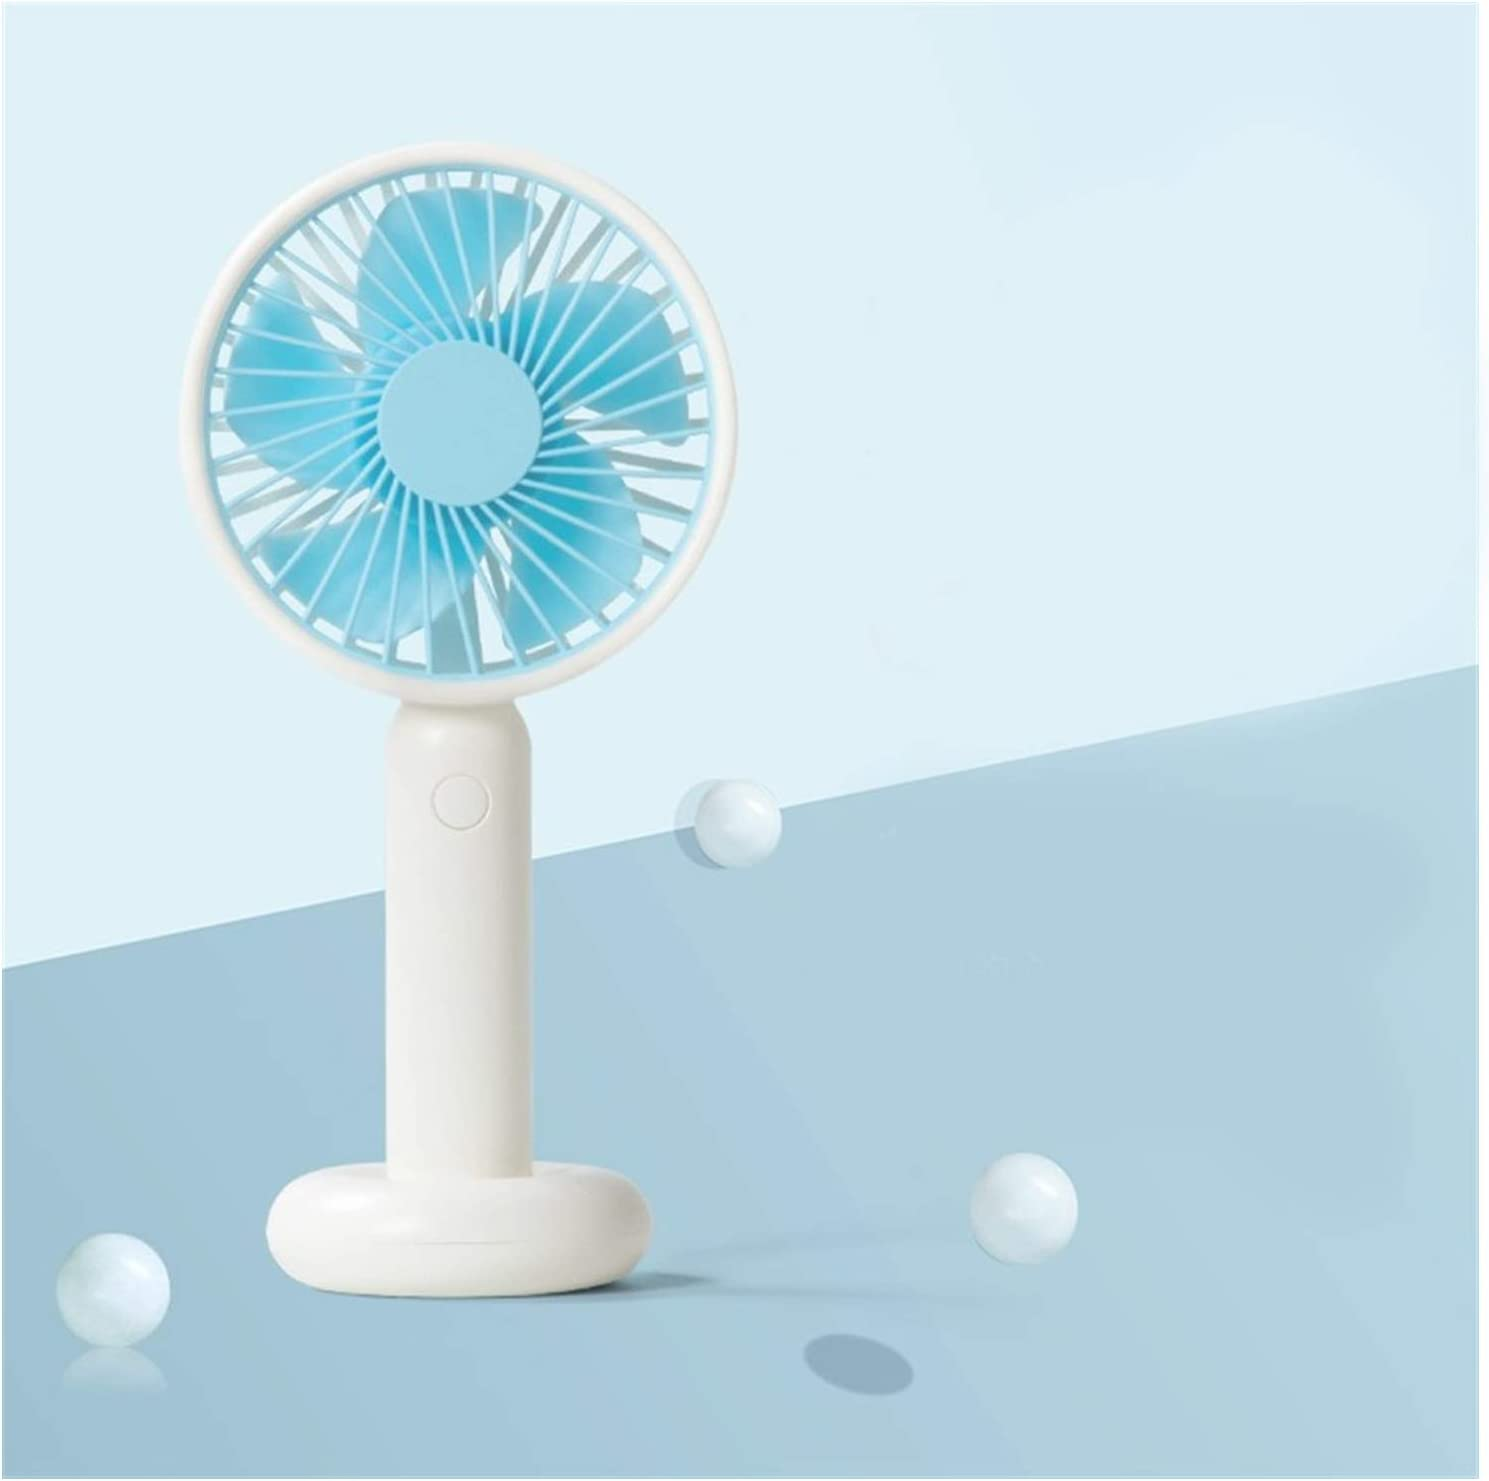 Air Cooling Fan Mini Round Fan USB Portable Handheld Desktop Electric Fan Large Wind Outdoor Cooling Fans Color : Blue